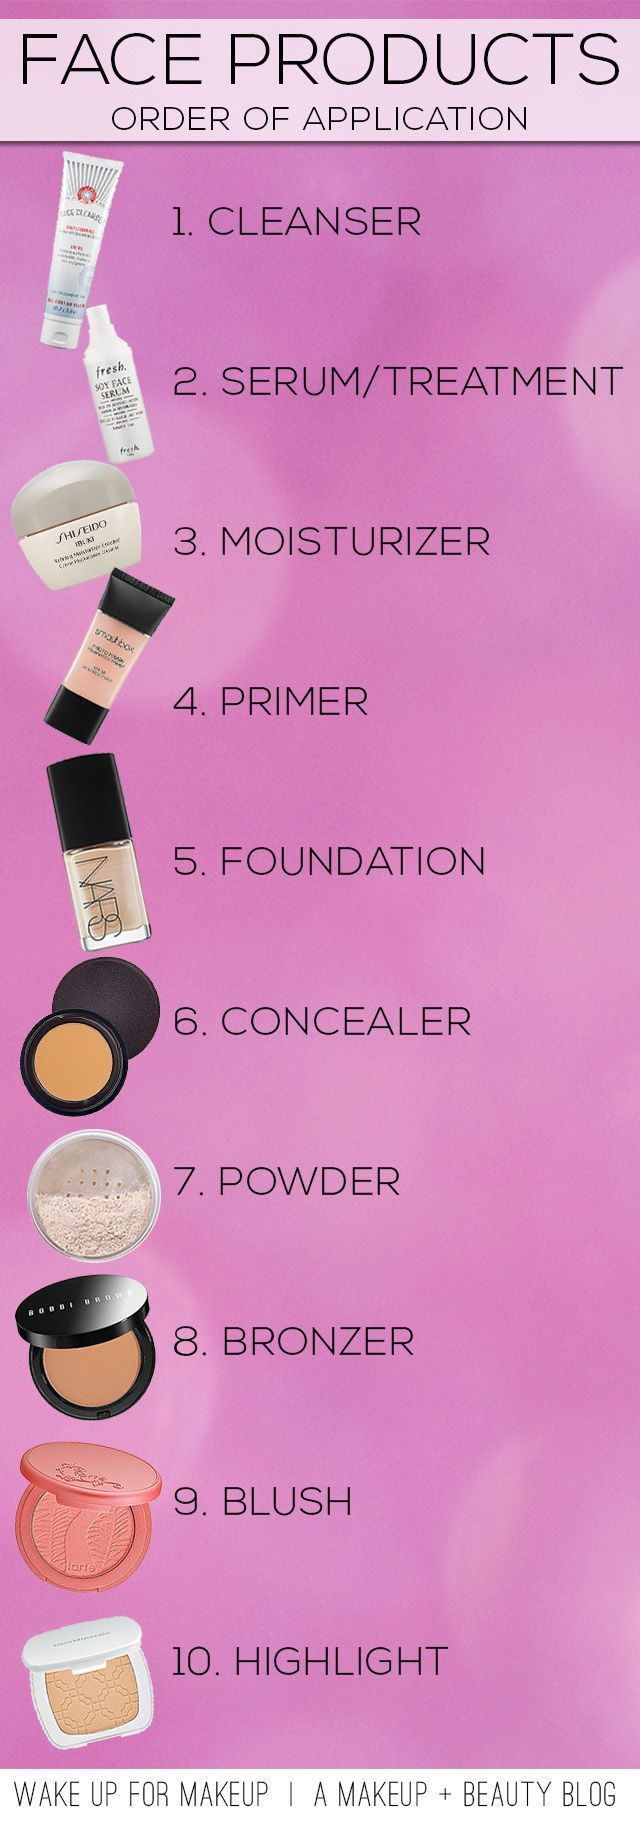 Makeup Tips  I Do All These Steps Except Primer, Powder And Highlighter In  This